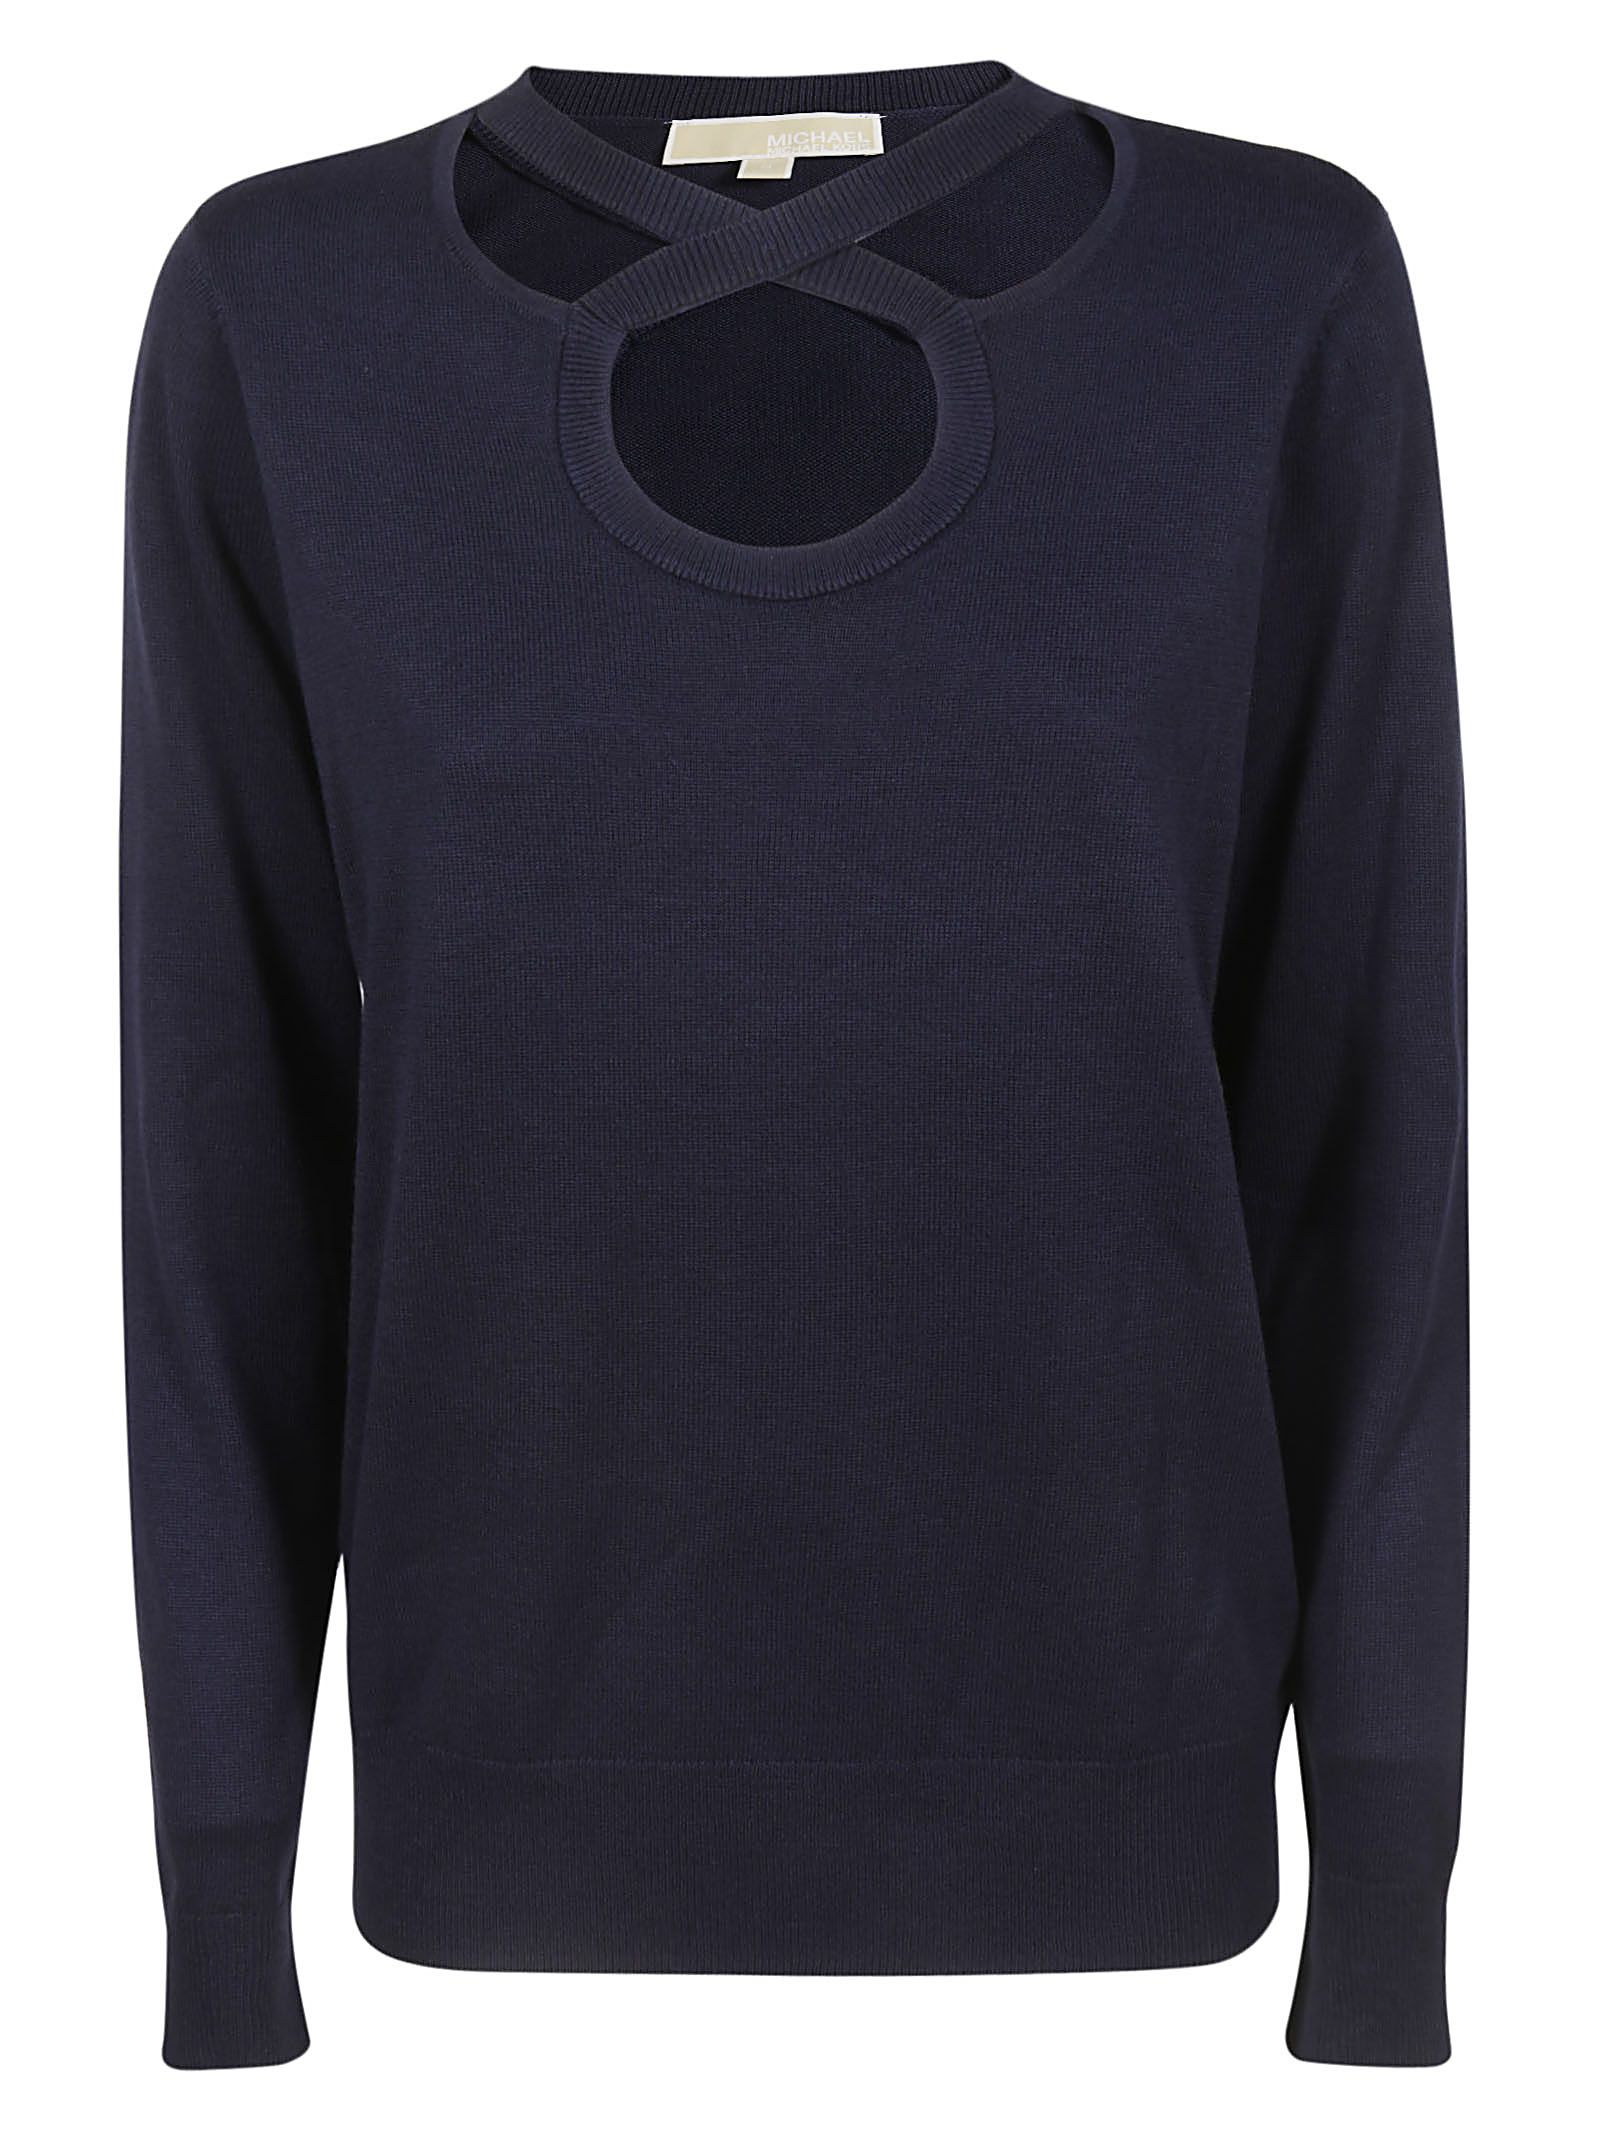 Michael Kors Lace-up Detail Sweater